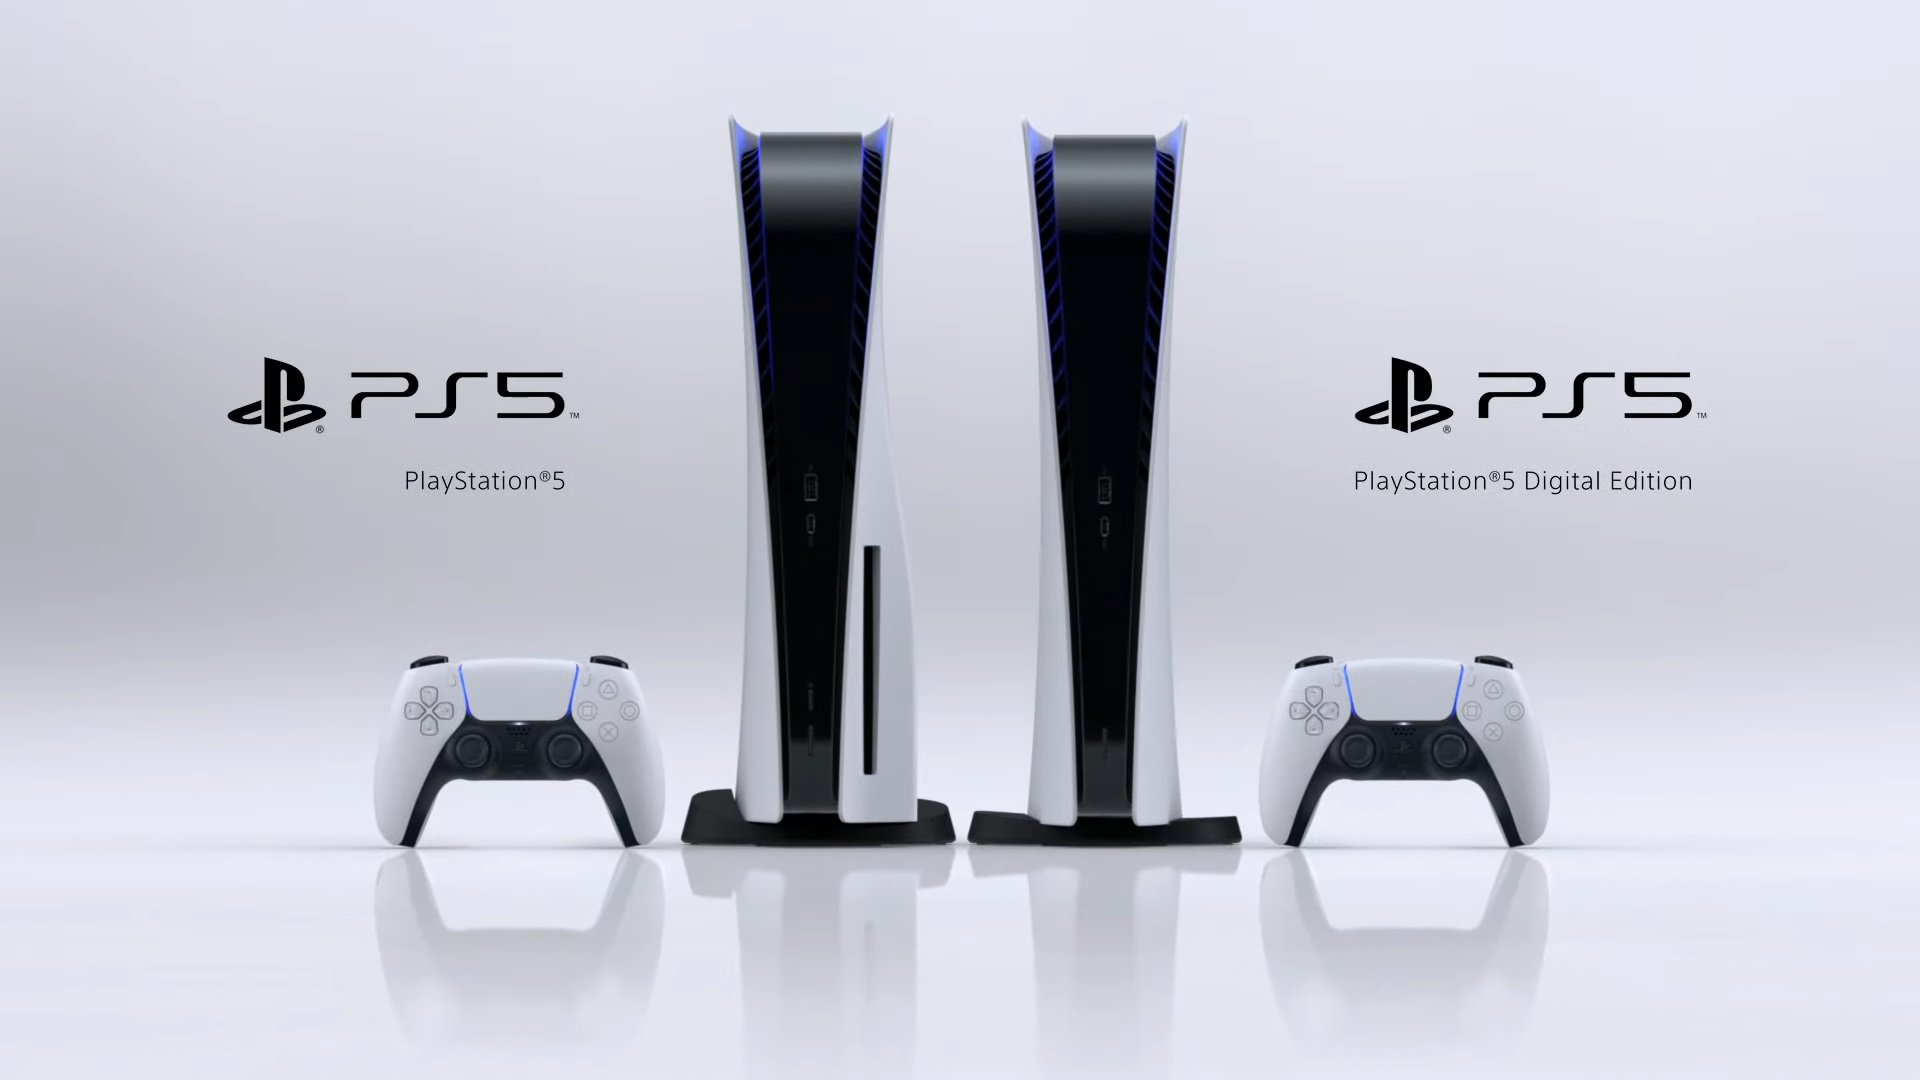 PlayStation 5 £599 Price Placeholders